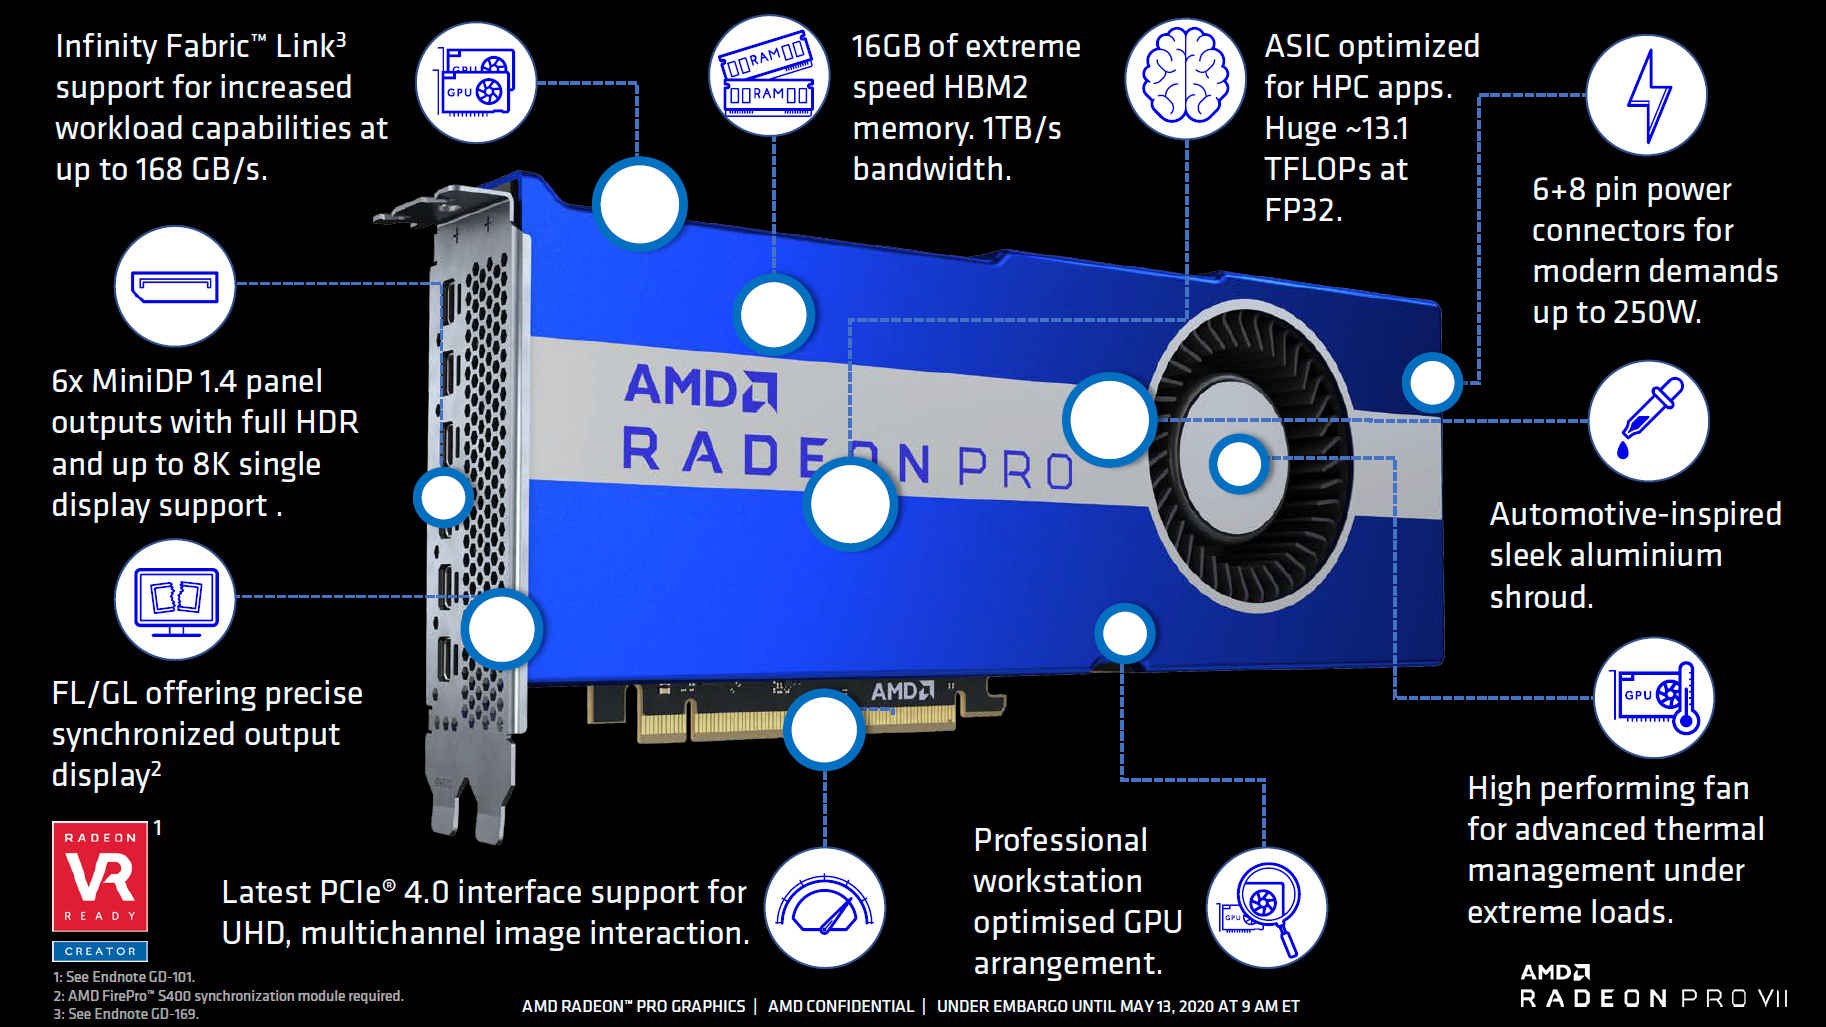 Amd Announces Radeon Pro Vii Featuring 16gb Hbm2 Memory And Infinity Fabric Link Videocardz Com